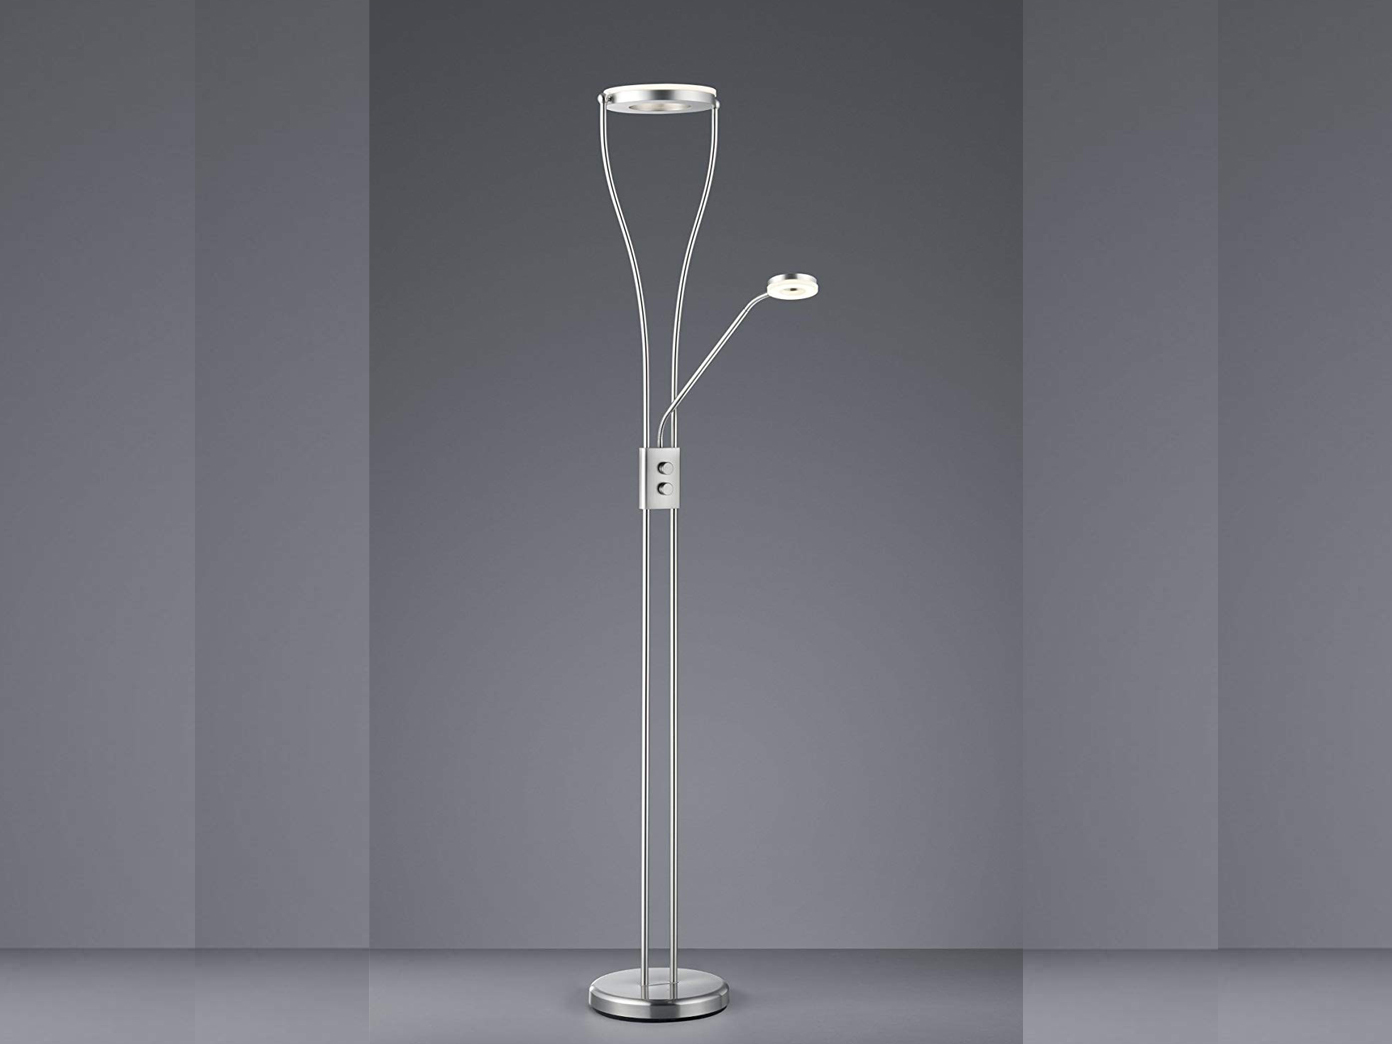 Full Size of Stehlampe Dimmbar 5e239855814d5 Stehlampen Wohnzimmer Schlafzimmer Wohnzimmer Stehlampe Dimmbar